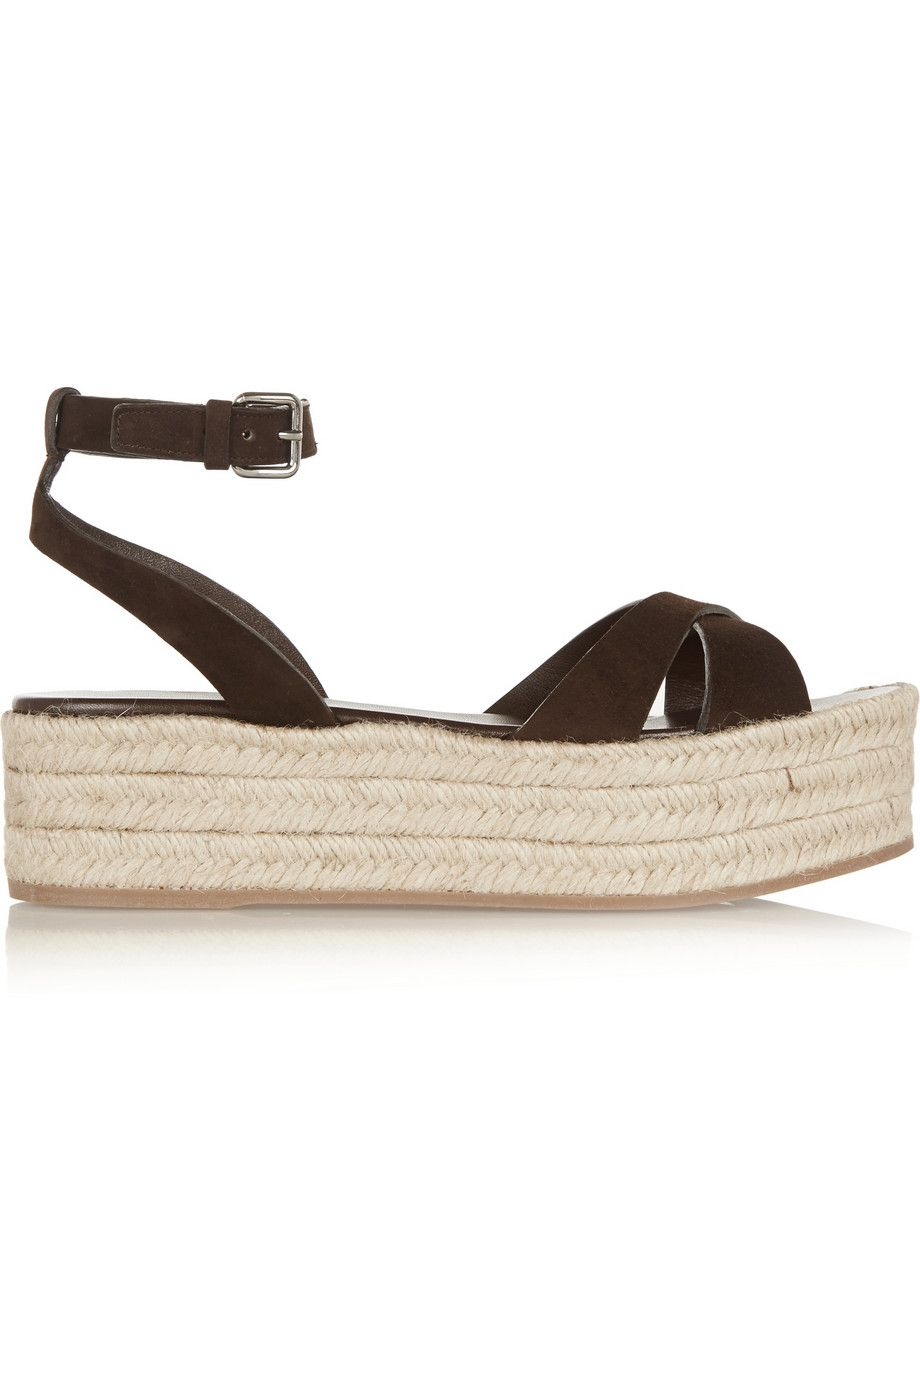 7087c93a7744 MIU MIU Suede Espadrille Platform Sandals.  miumiu  shoes  sandals ...